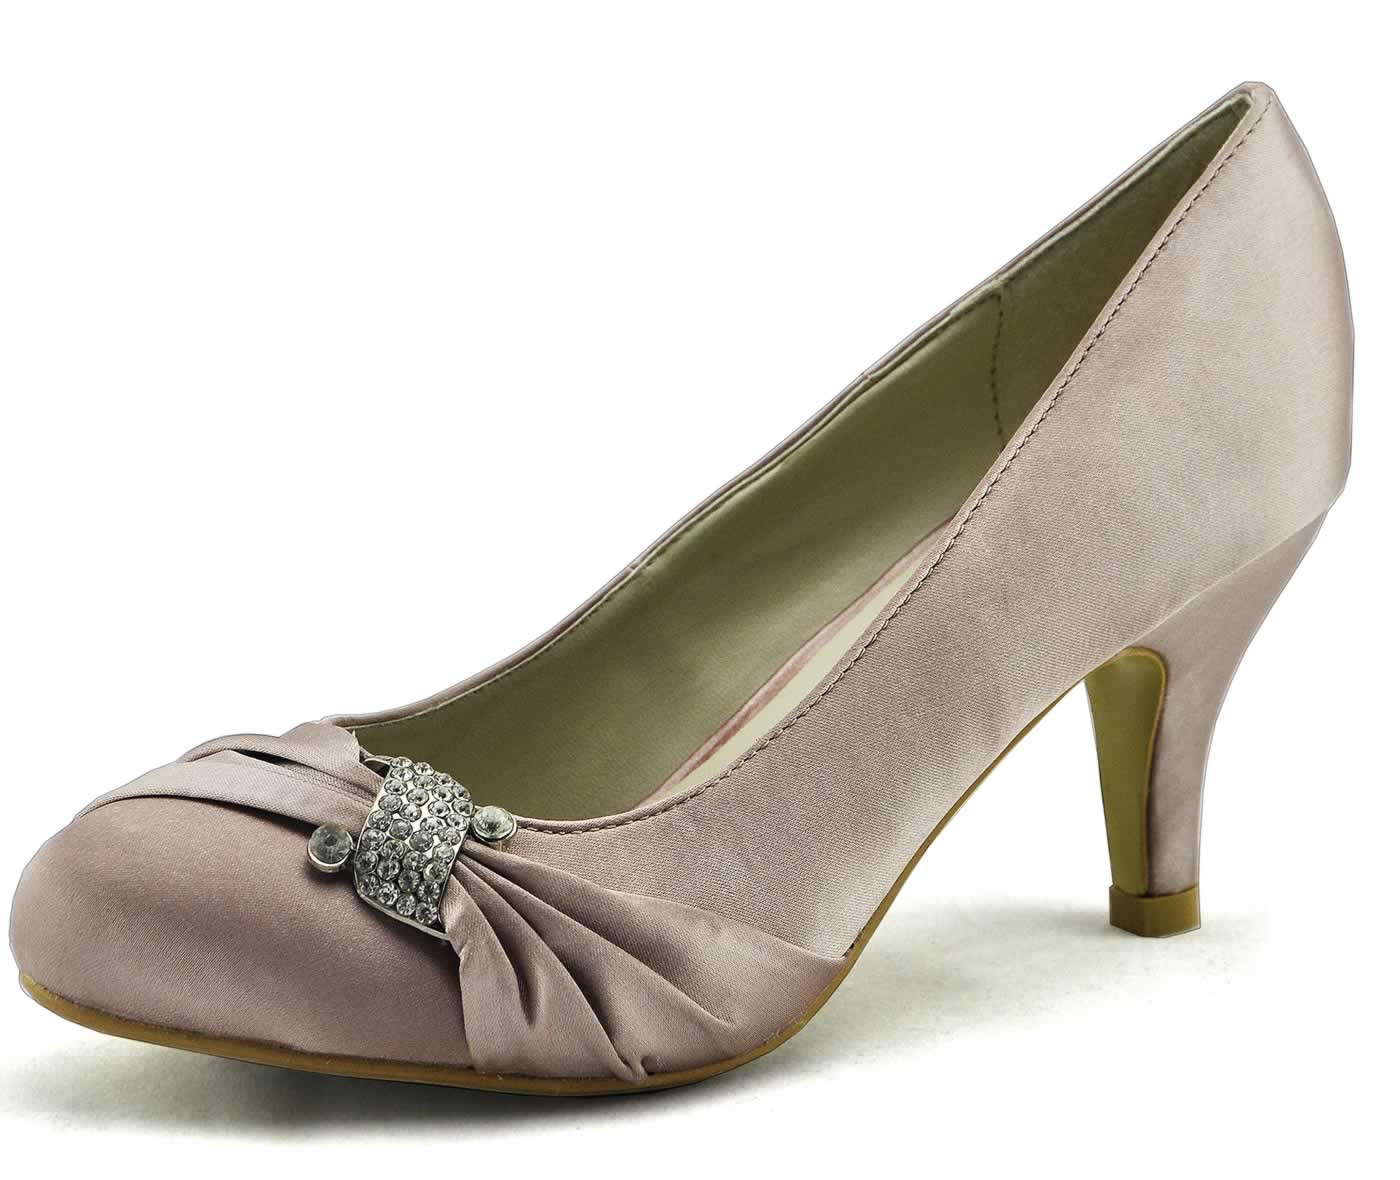 Nude Satin Shoes 79